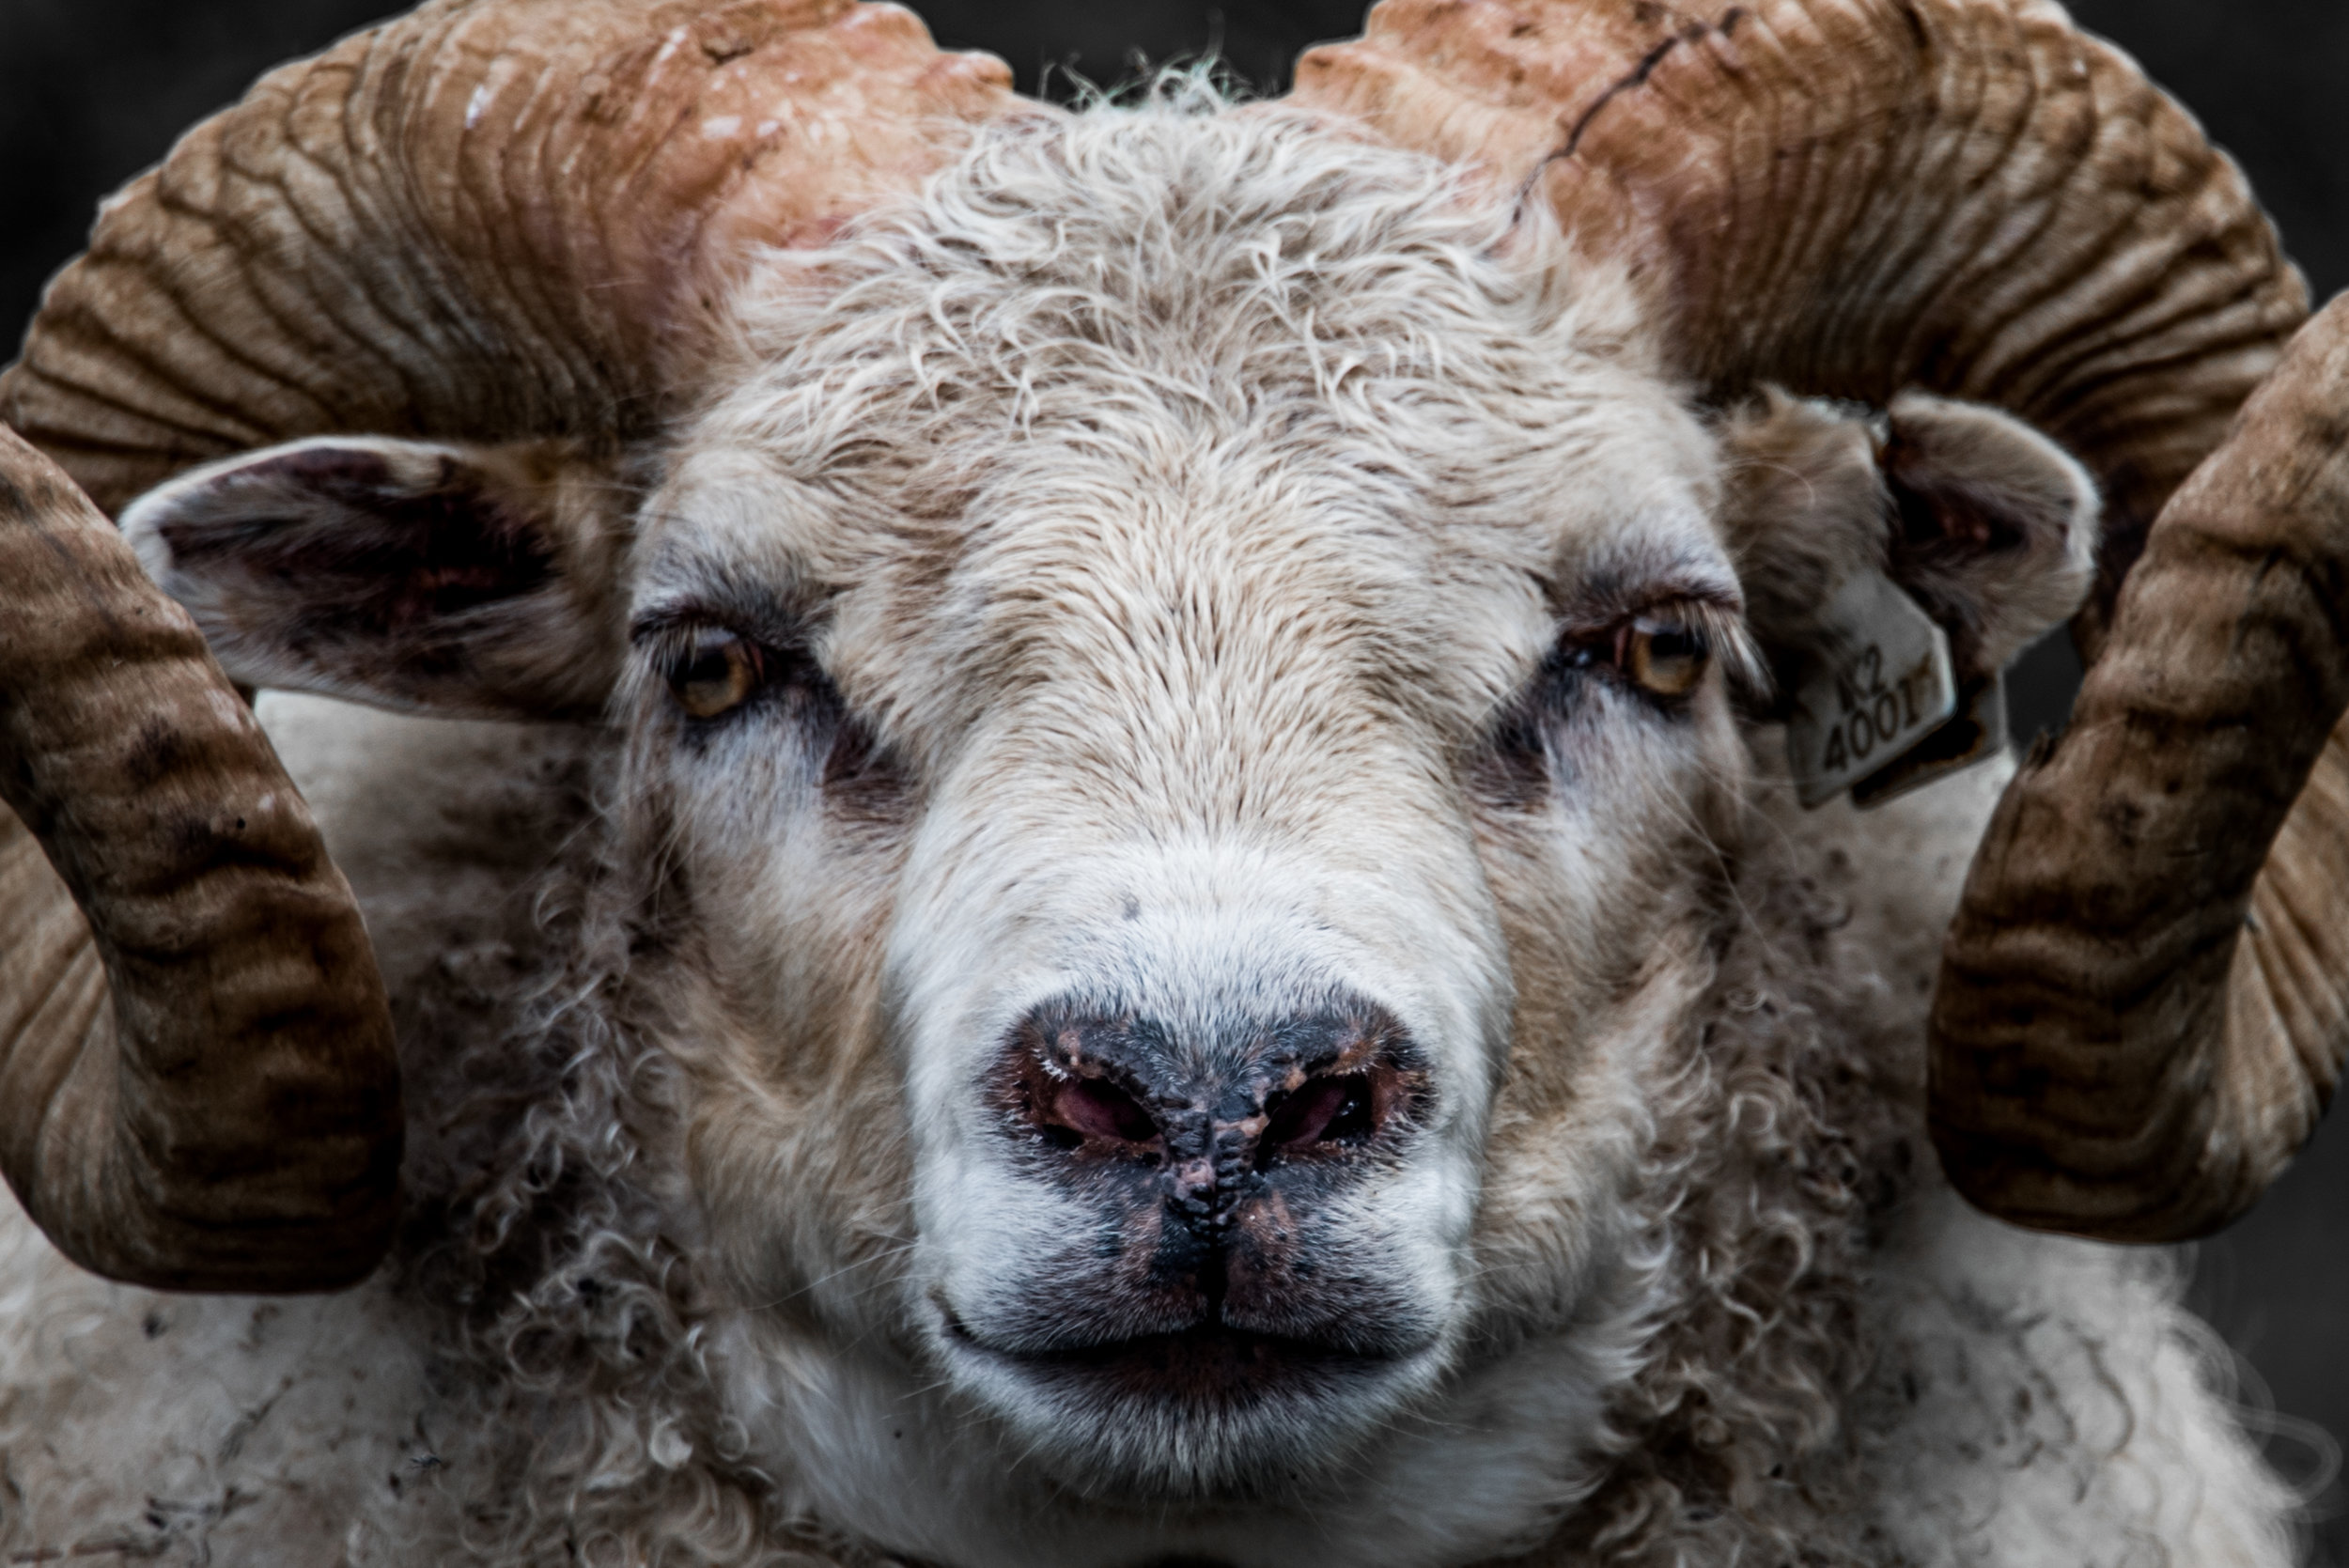 Icelandic sheep may look pretty ferocious and seek to intimidate, but never gave us any actual trouble on the road. They're way more of a danger to (or rather, endangered by) folks speeding along in cars.